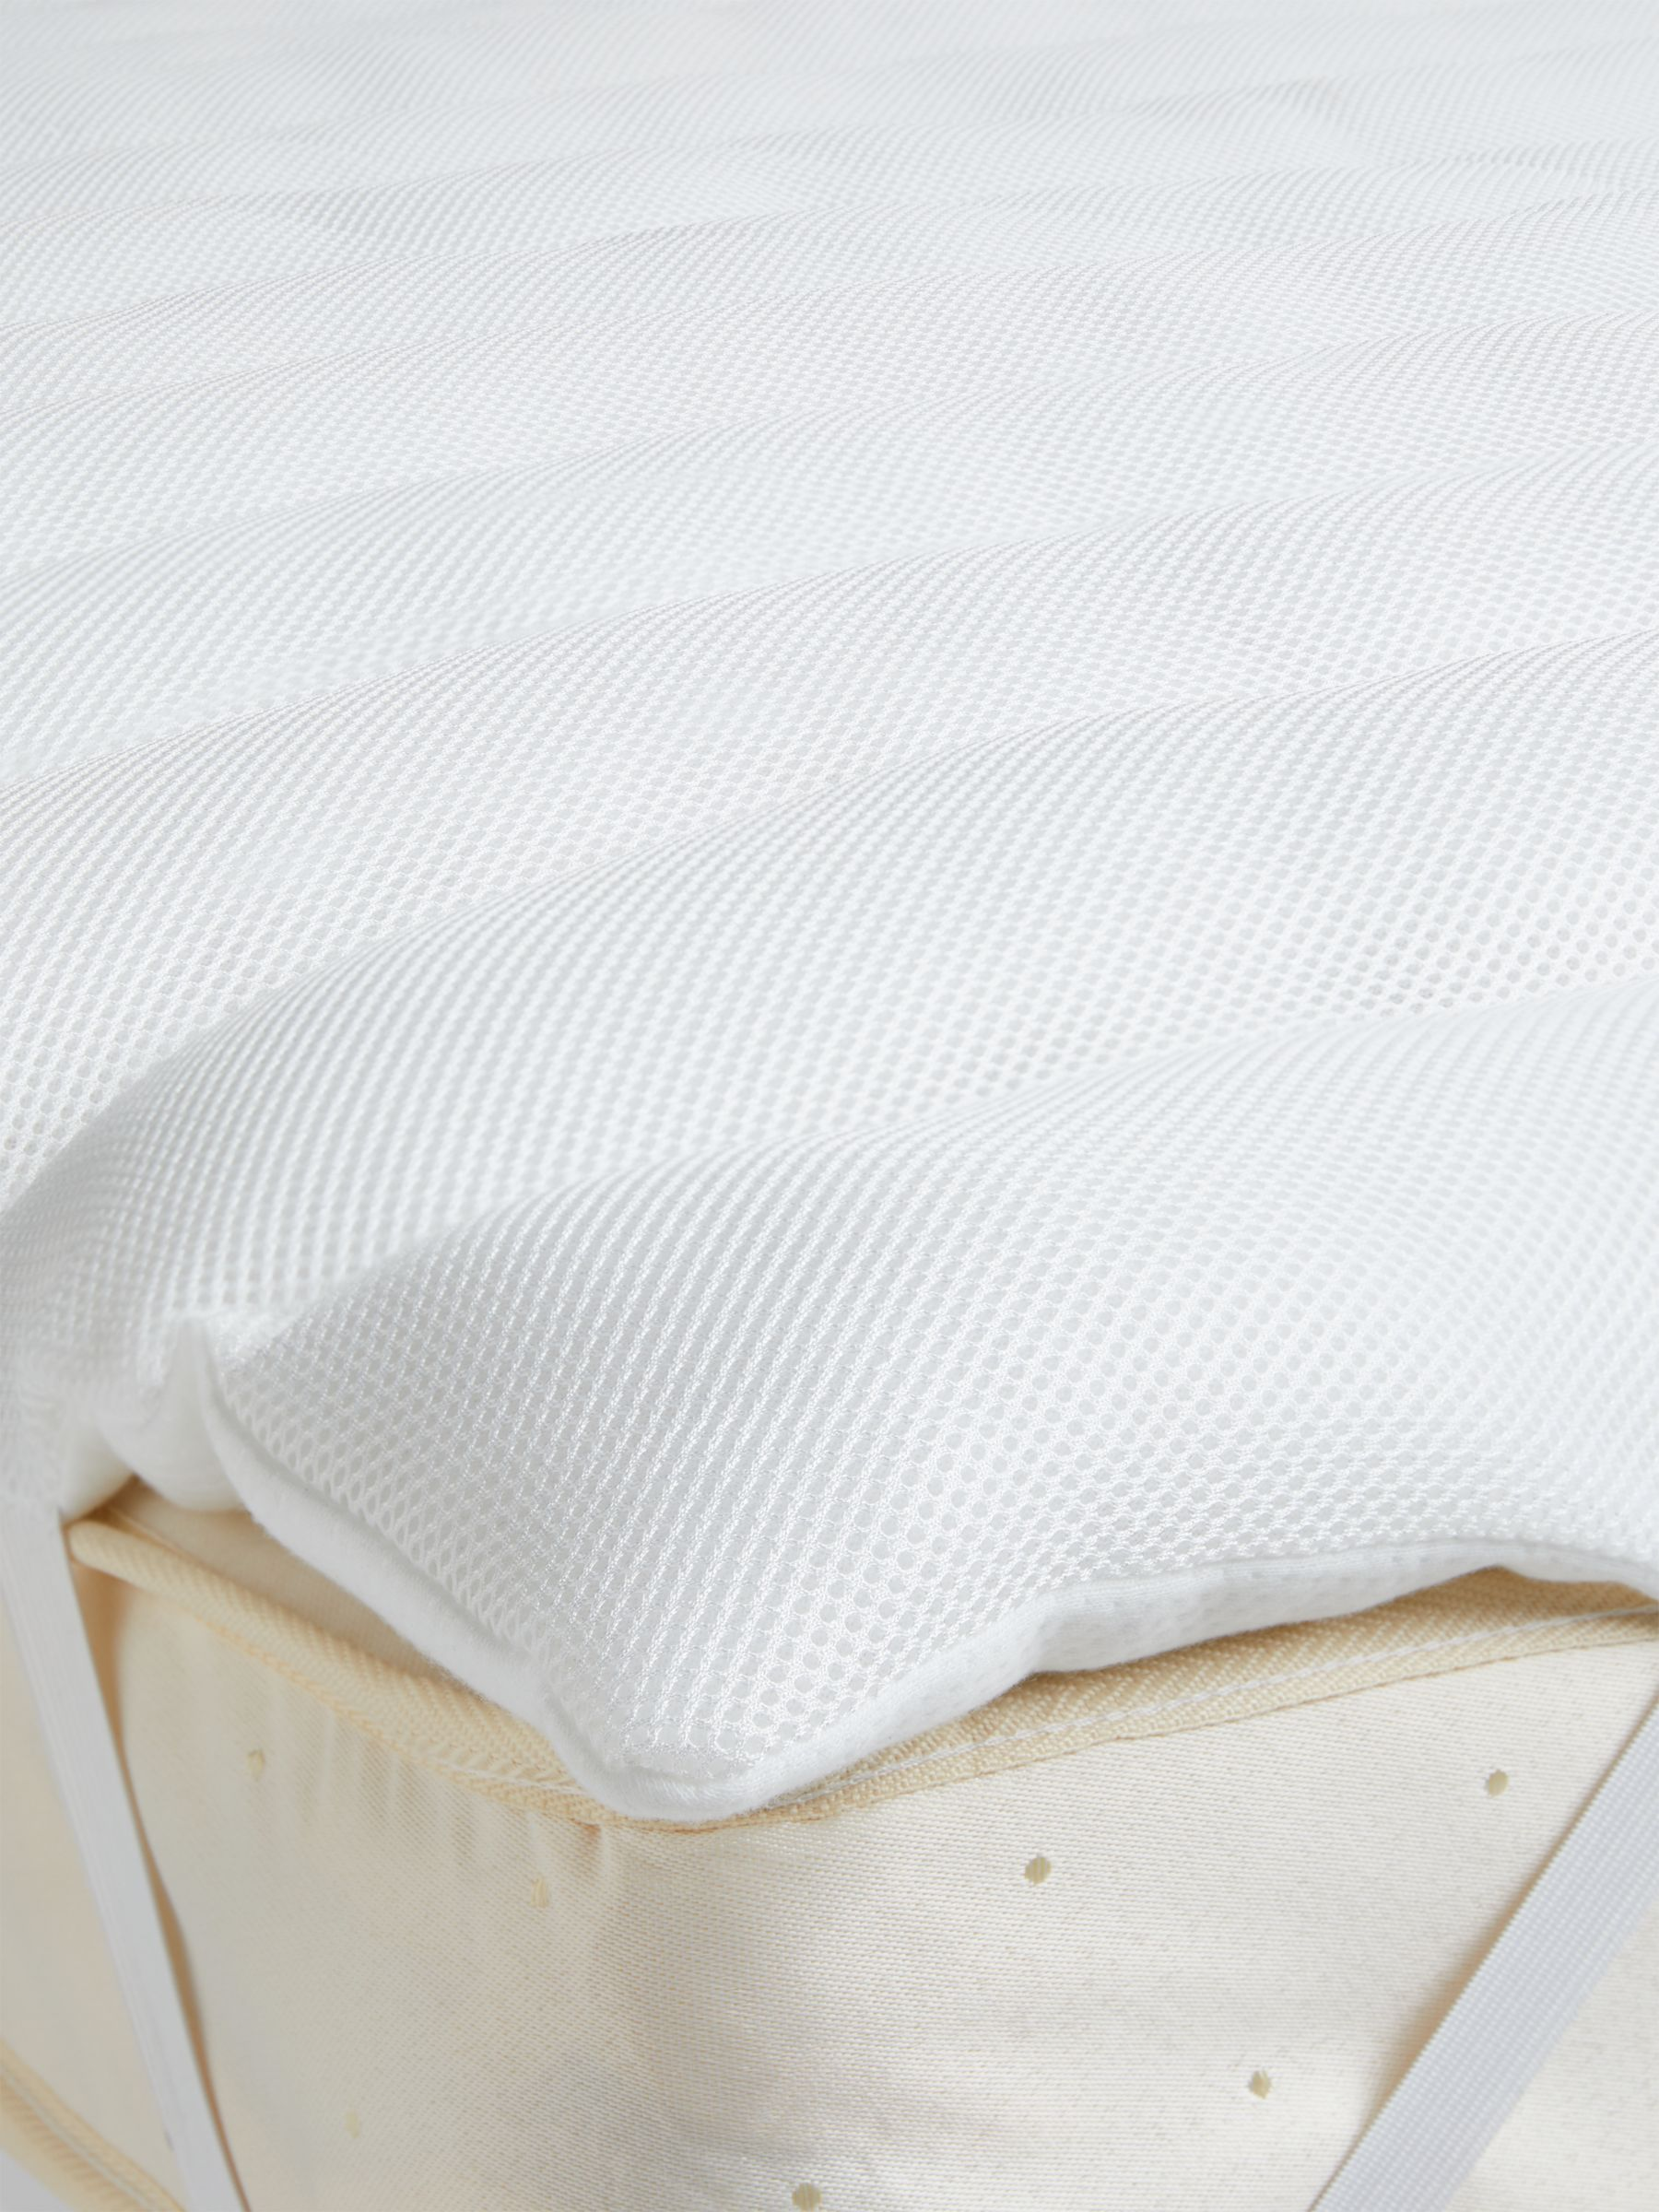 John Lewis & Partners Synthetic Sofa Bed Mattress Topper